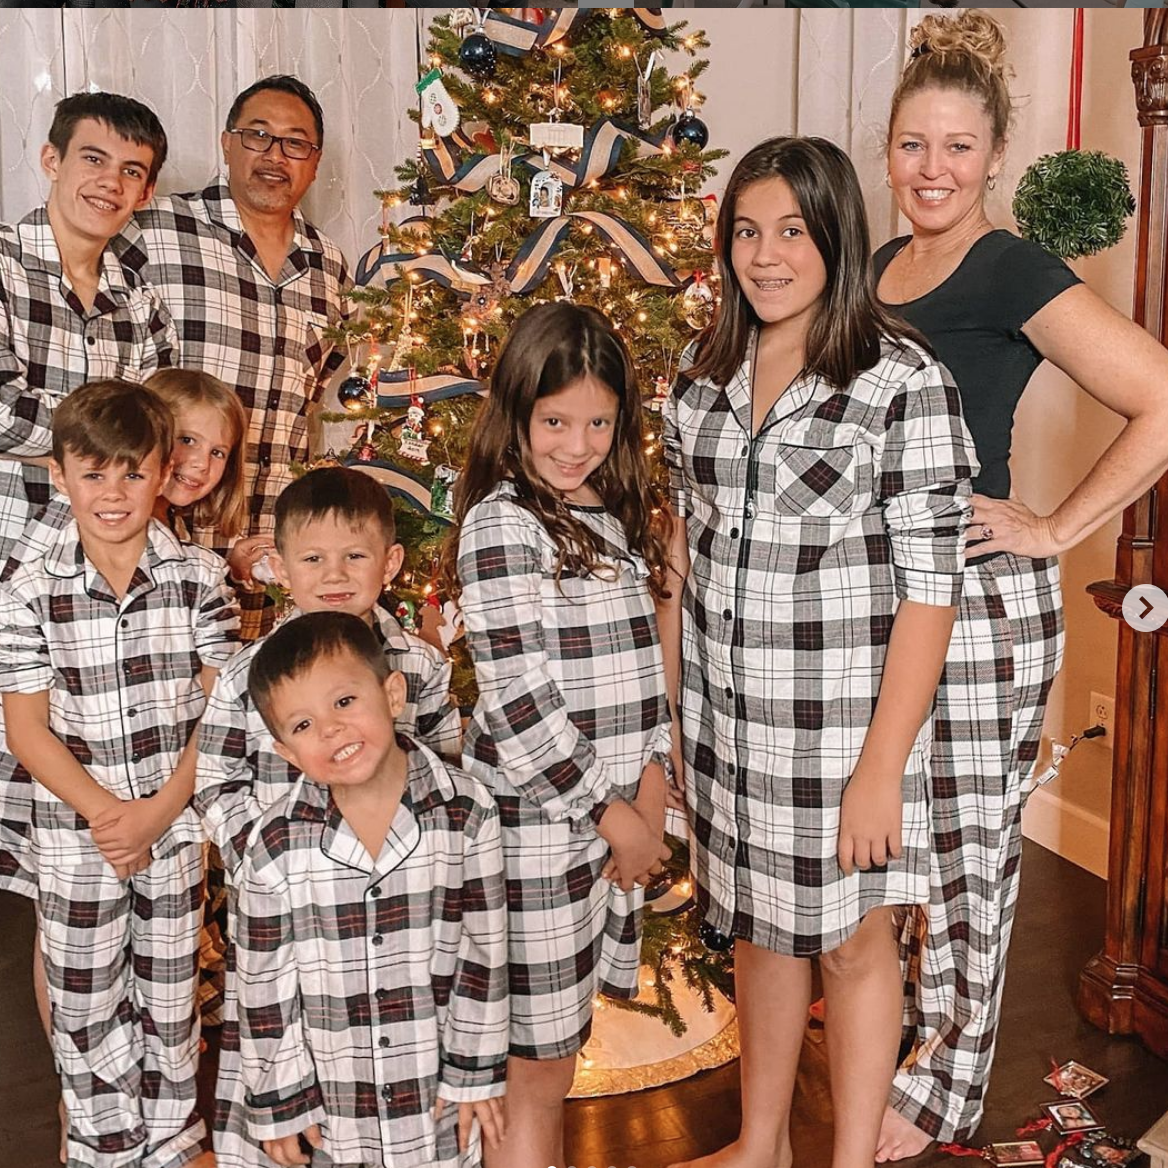 couple adopts 7 siblings and spends a winter night together in front of a decorated tree, wearing match pj's